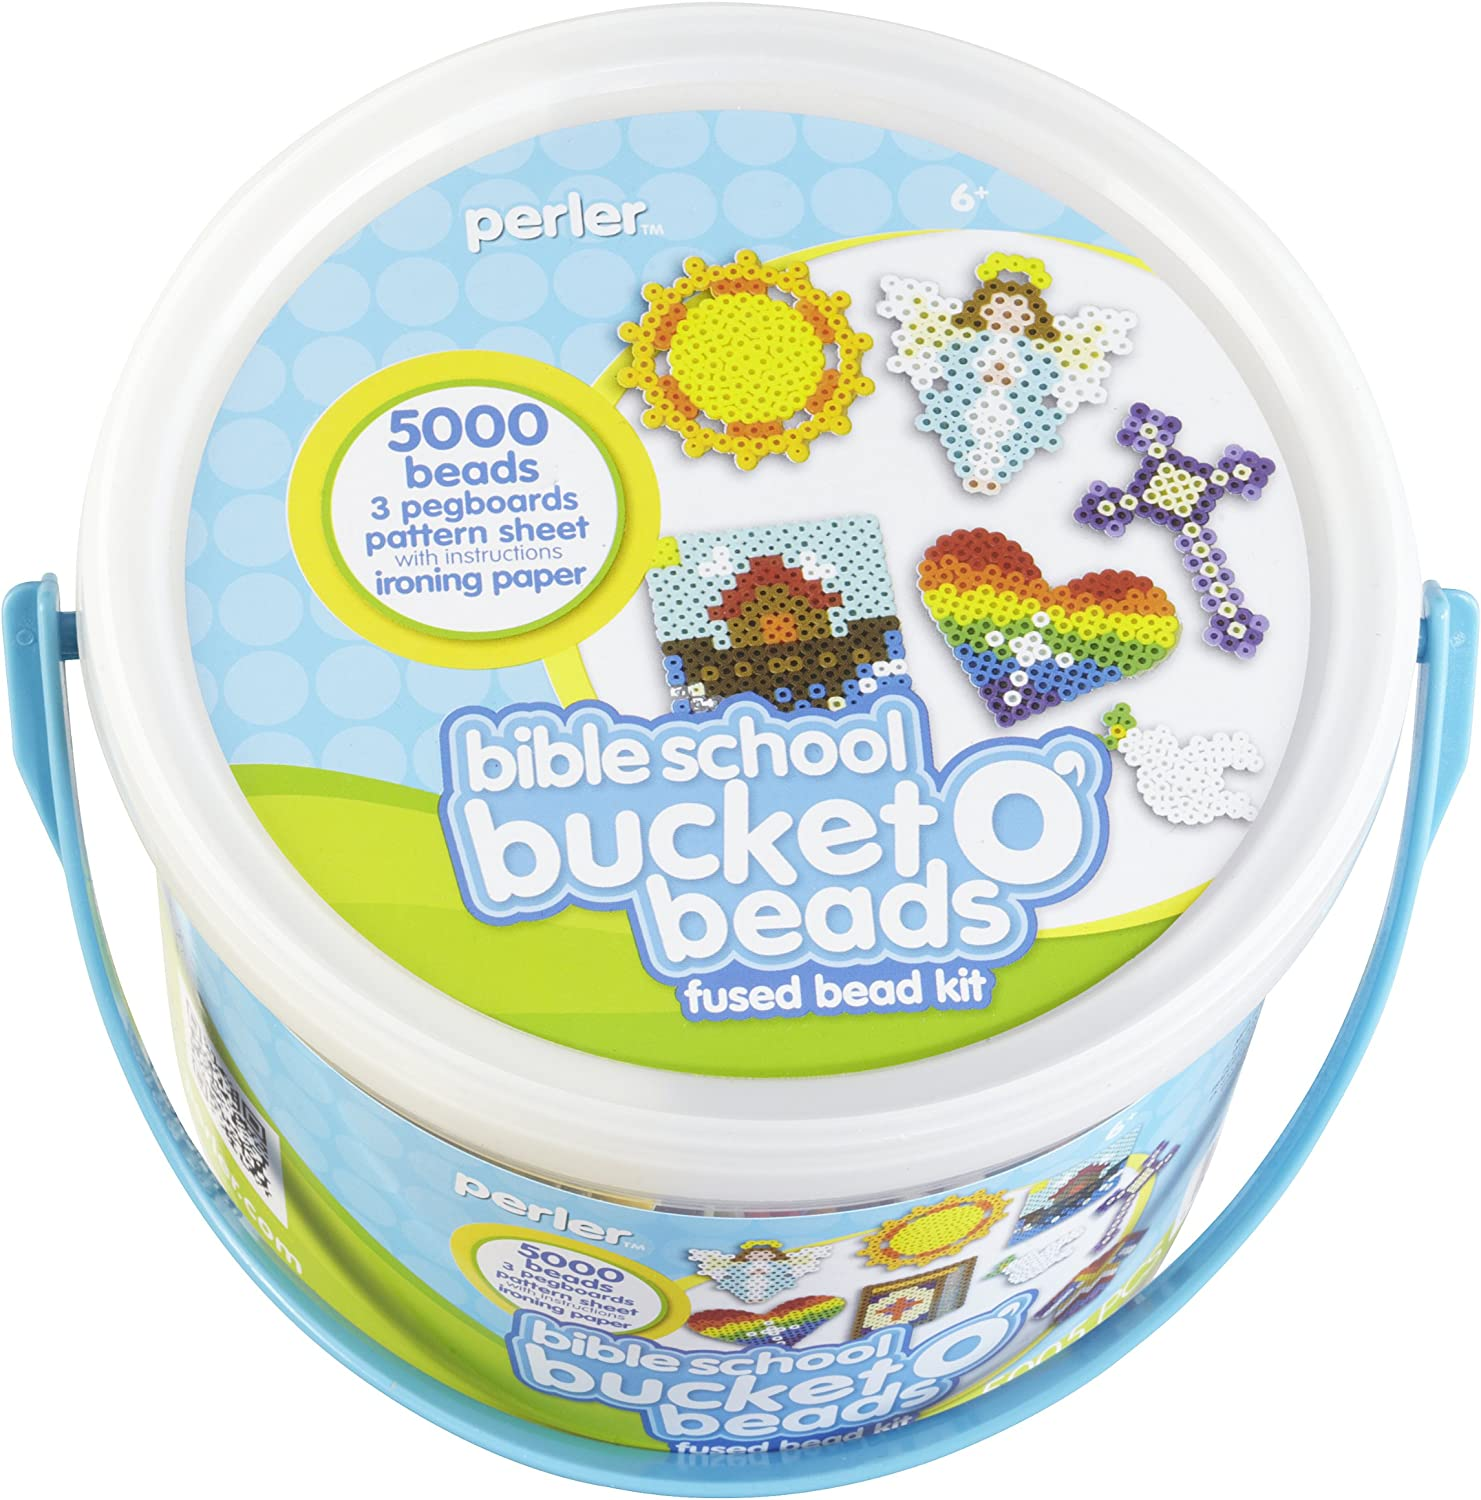 Bible School Bucket o Beads Perler Fused Bead Kit